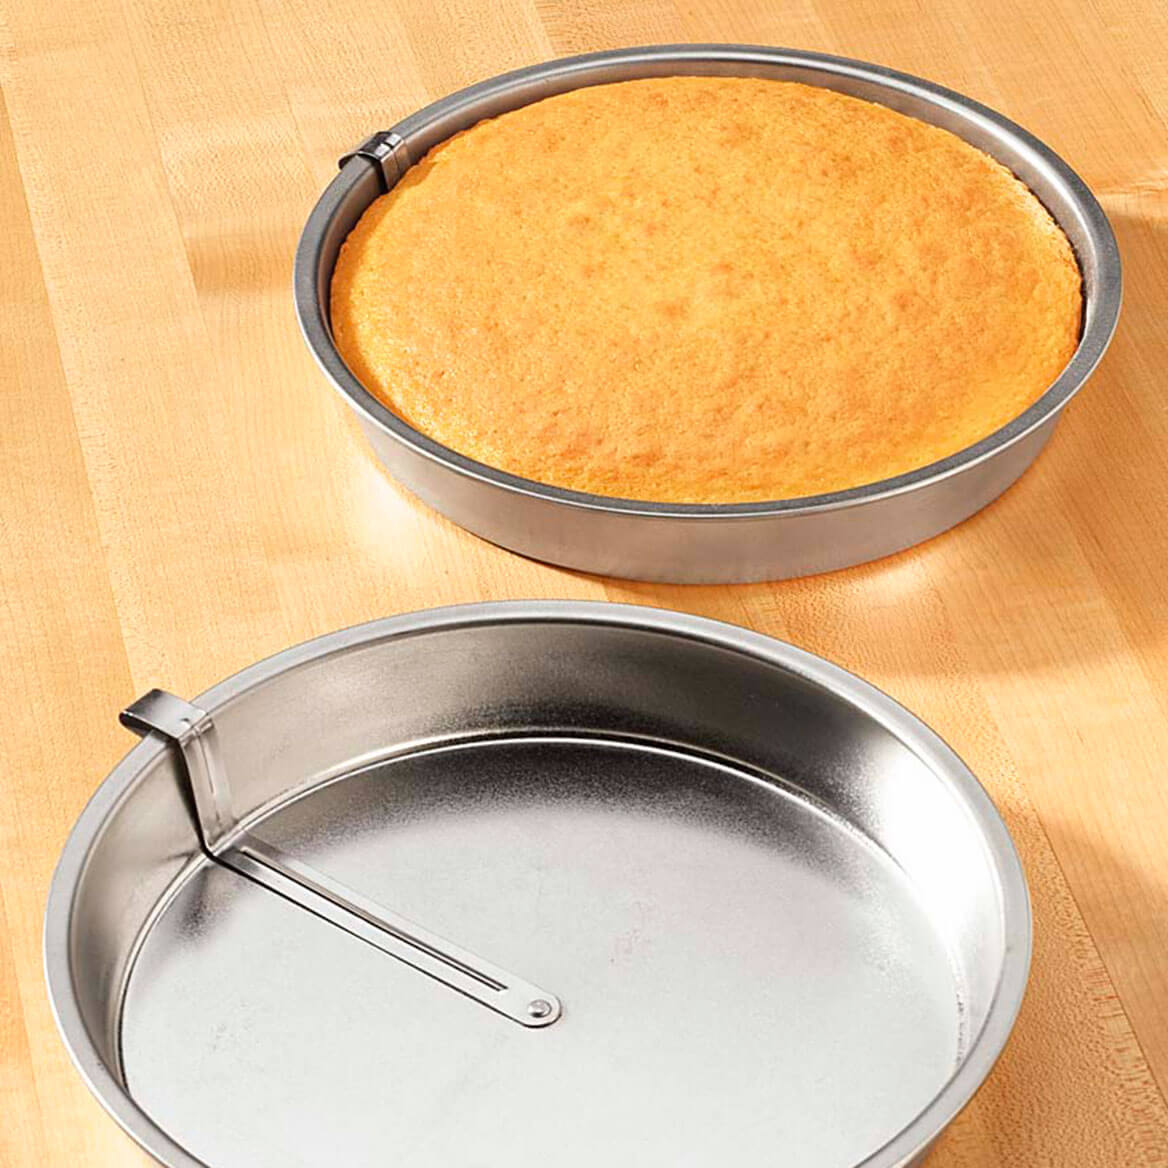 Easy Release Cake Pan - 8 In Round Cake Pan - Kitchen - Miles Kimball